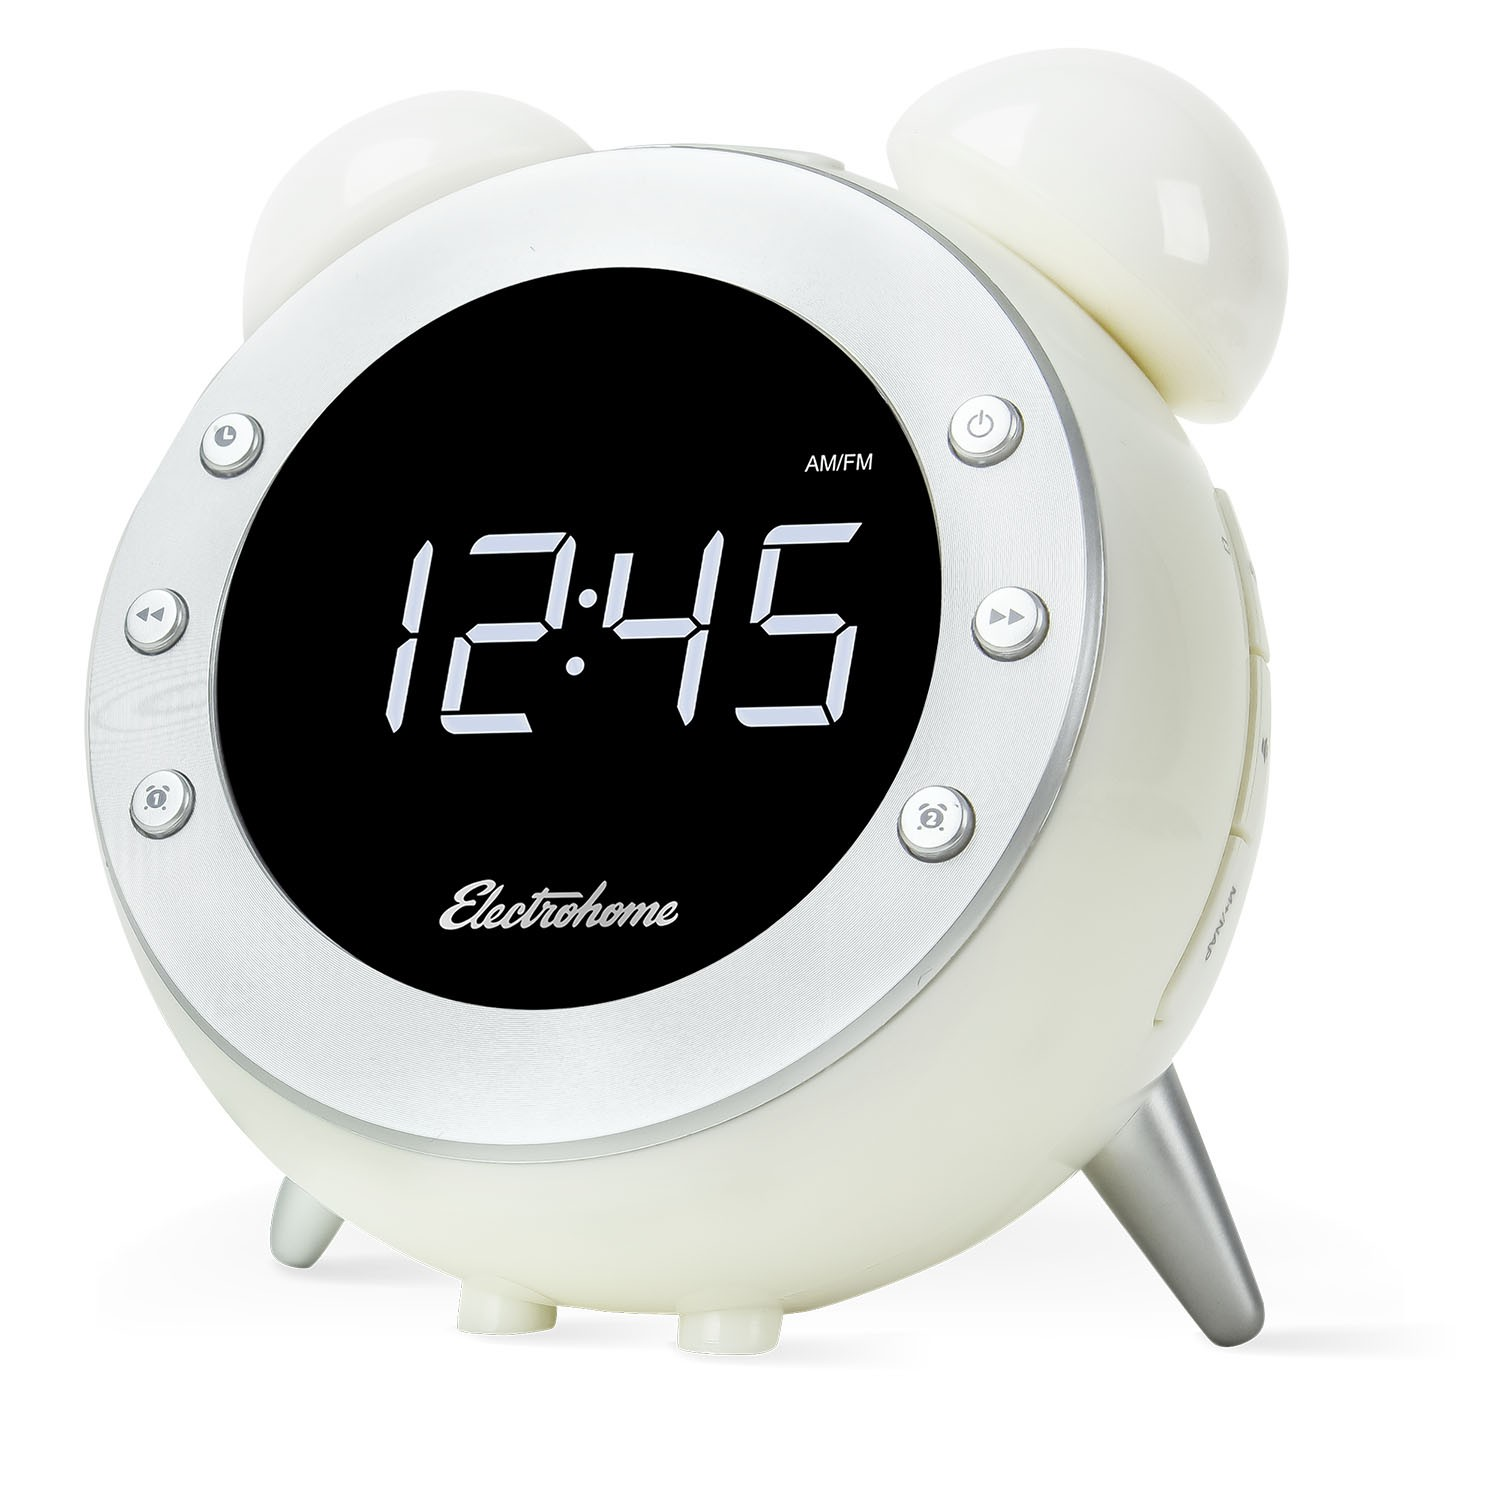 Electrohome White Retro Alarm Clock Radio CR35W